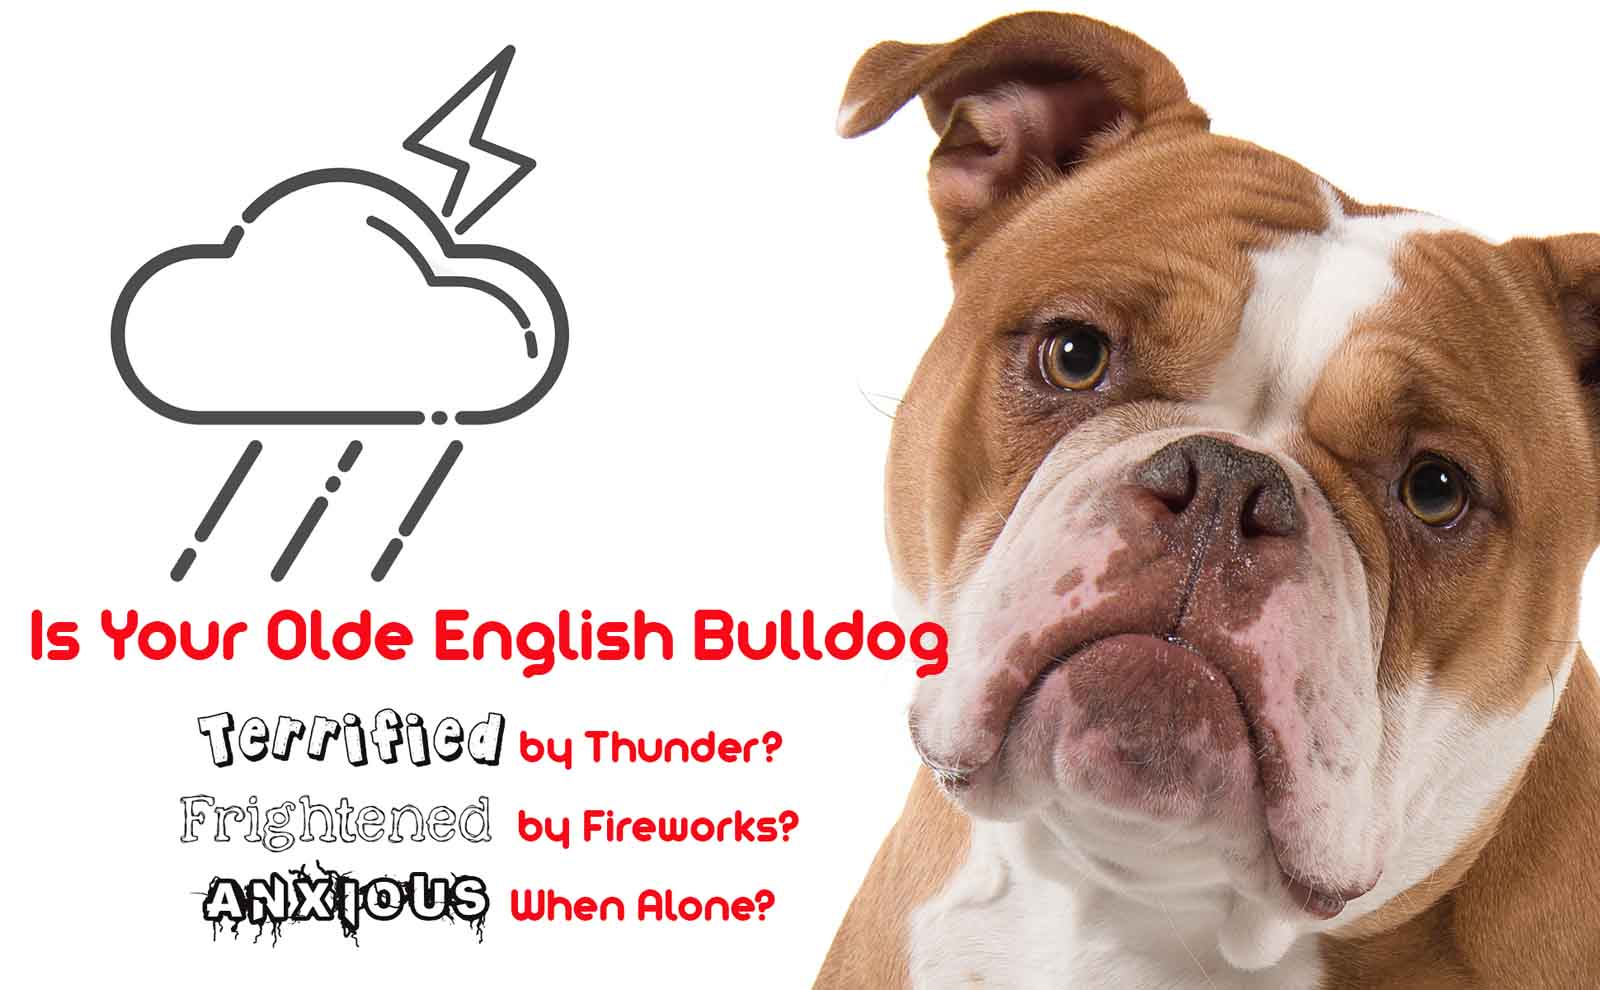 olde english bulldogge afraid